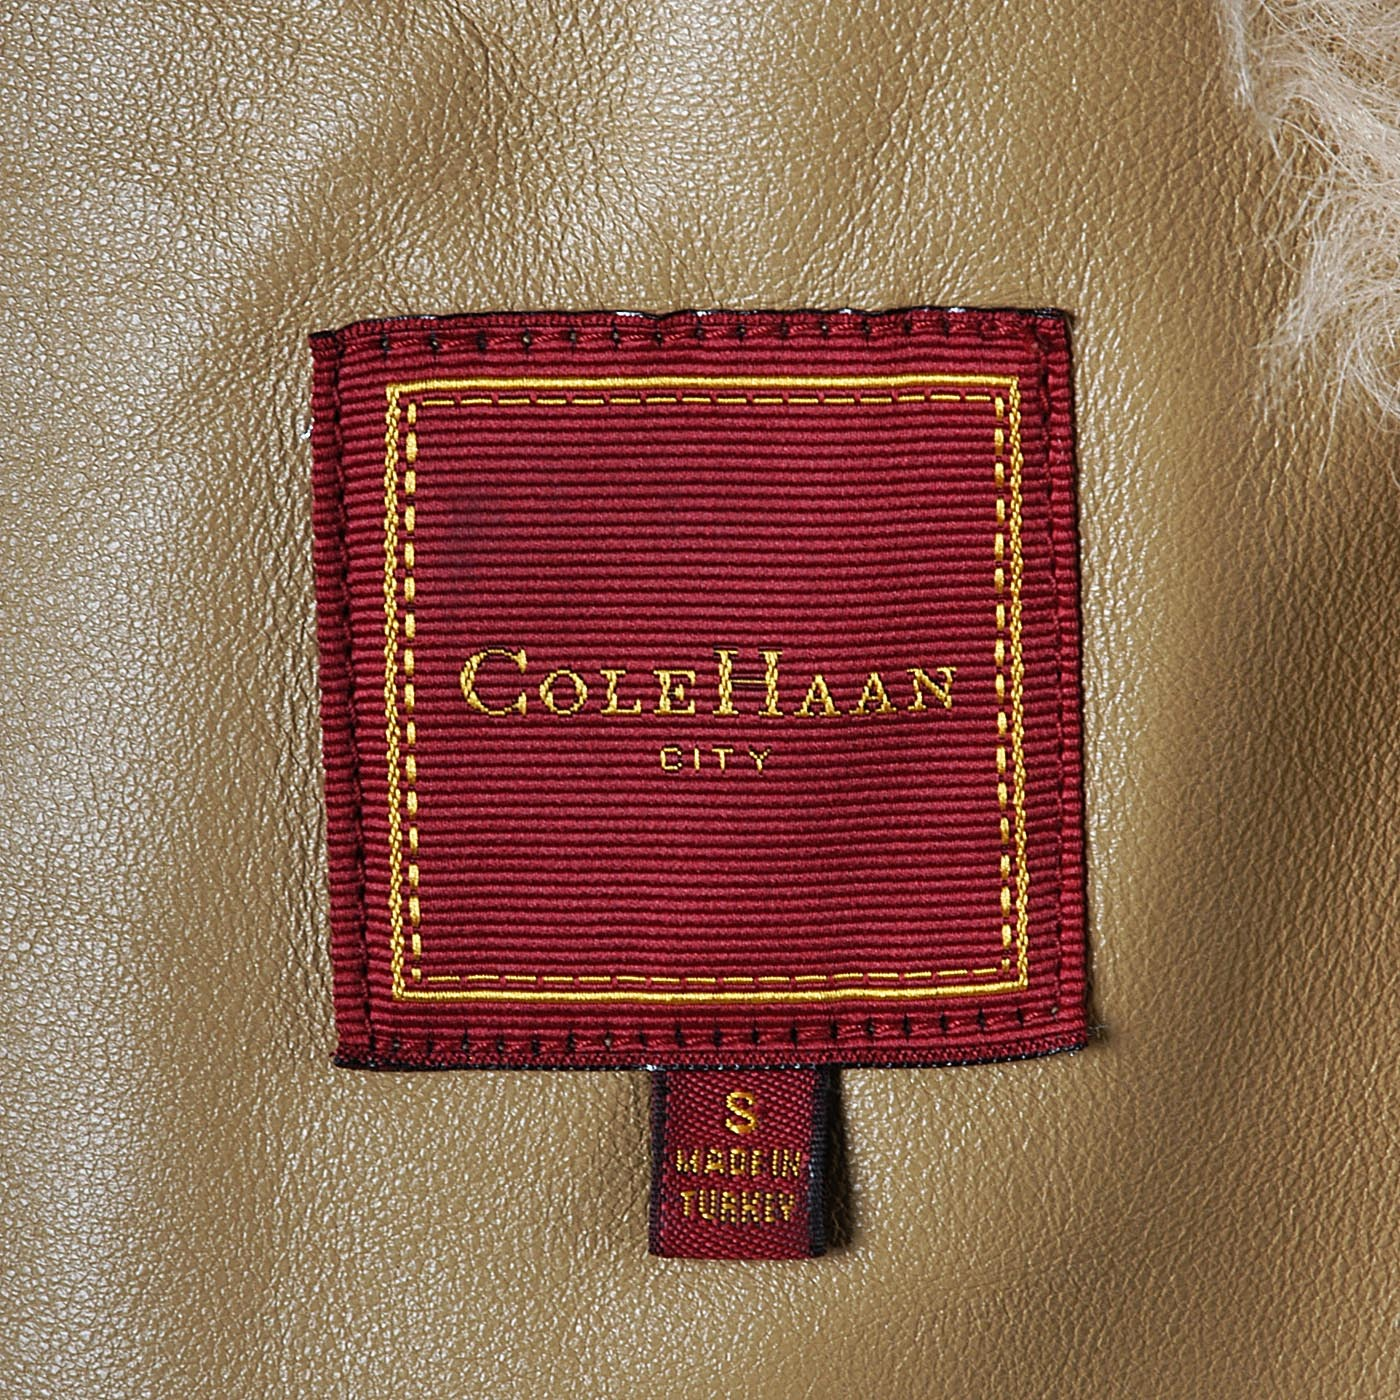 Bohemian Cole Haan Leather & Shearling Coat